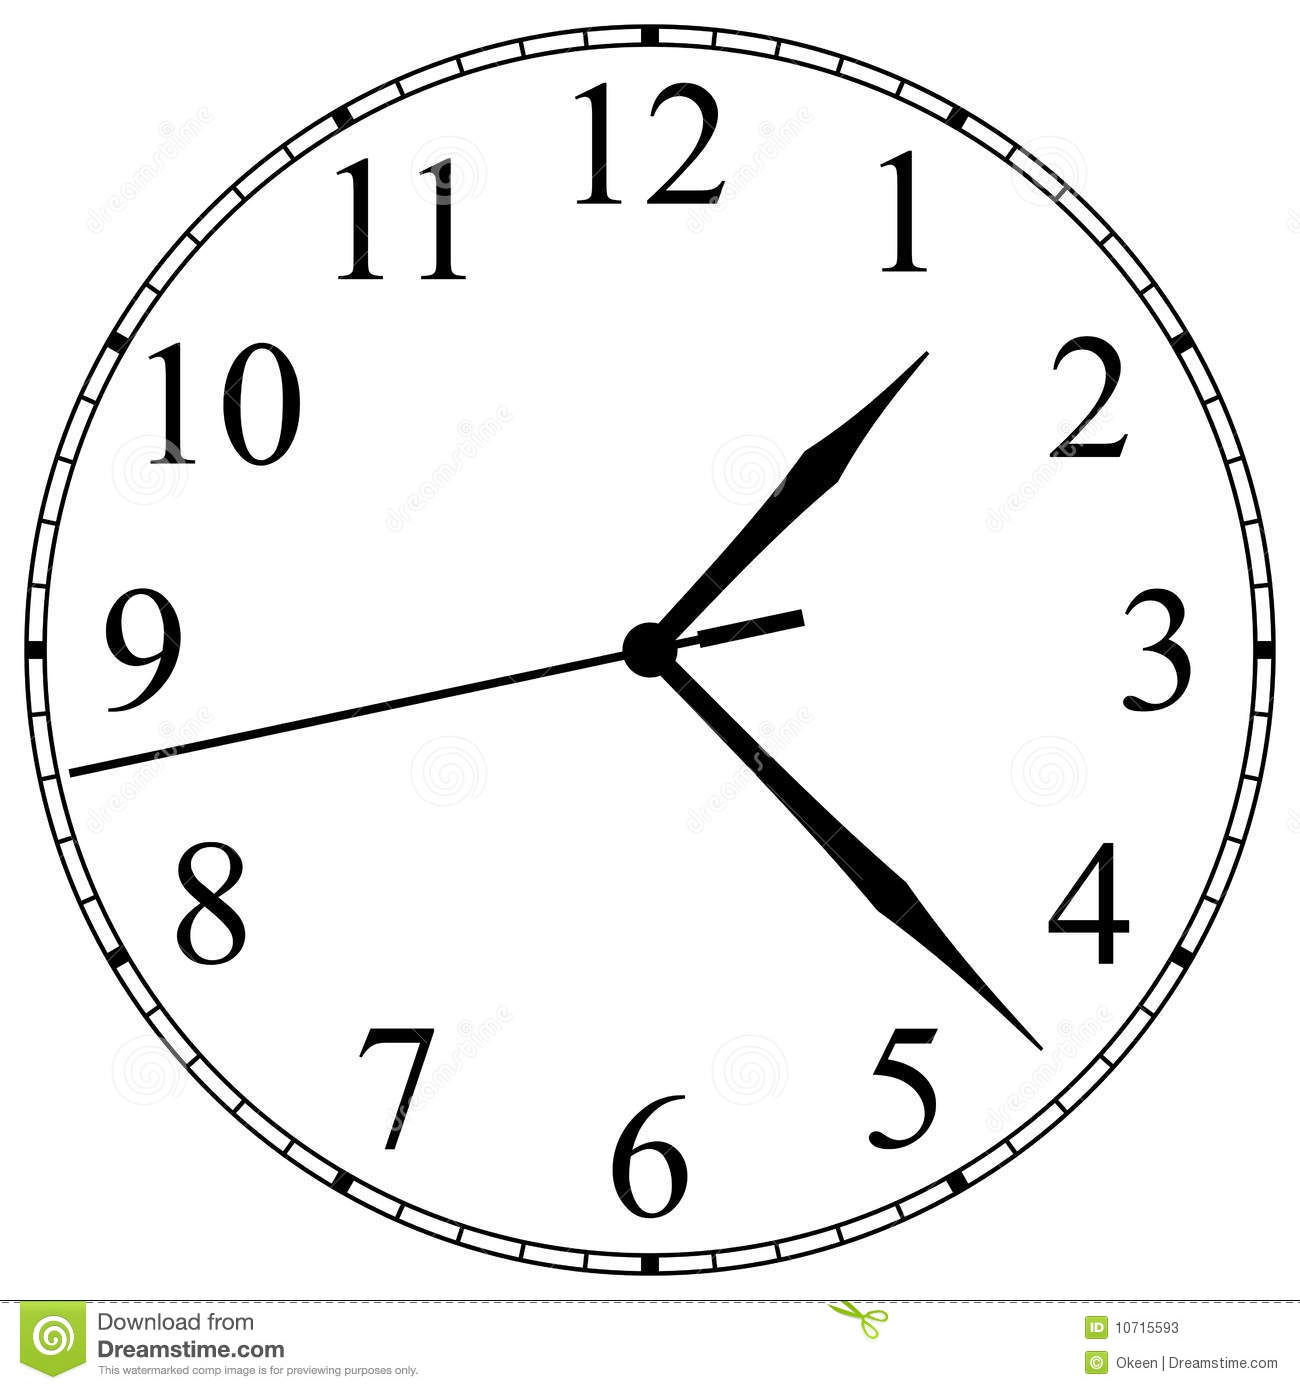 worksheet Clock Face With Hands clock face stock photos image 10715593 royalty free photo download face